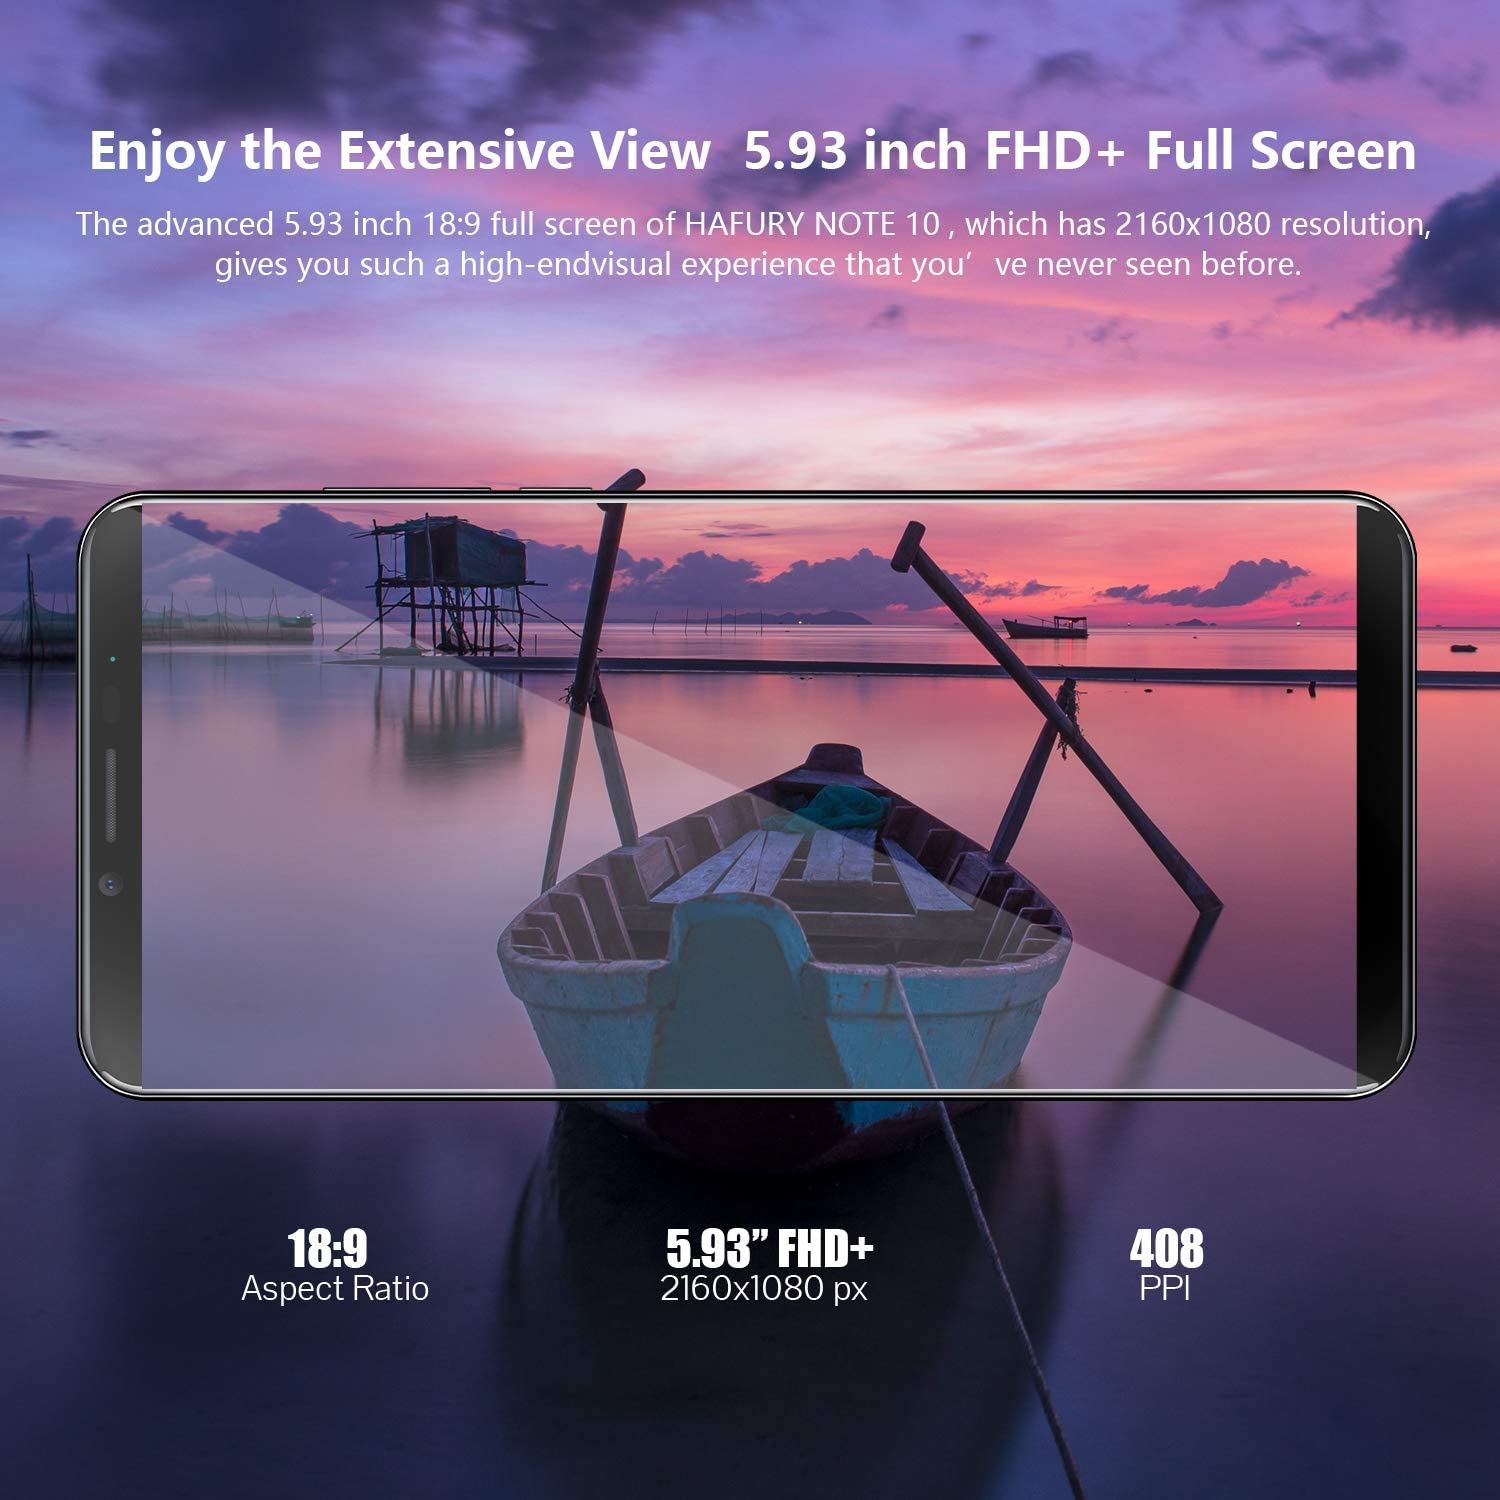 Gradient Dual Sim Dual Camera/Mobile phone 128GB Extension 4GB RAM+32GB ROM HAFURY NOTE 10/4G/Android 9 Sim Free Unlocked Smartphone,/5.93 inch FHD+/Display/with 4000mAh Battery